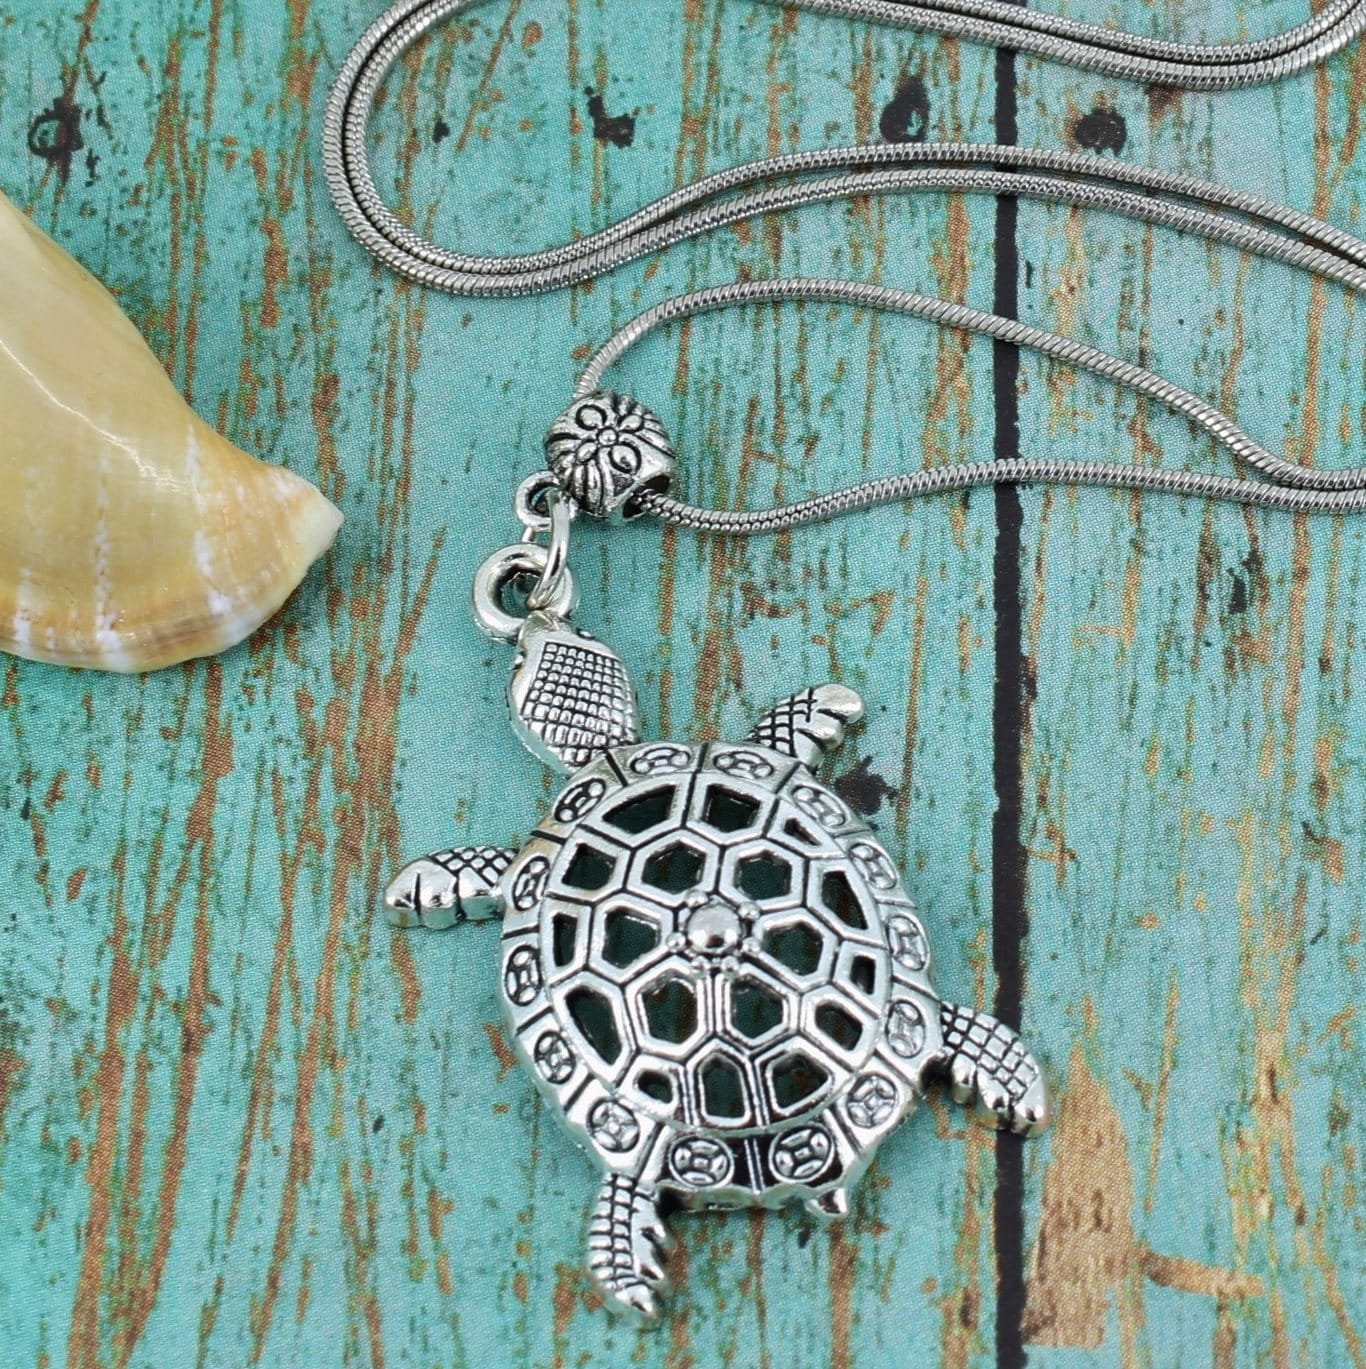 Turtle,Pendant,Necklace,Jewelry,silver_pendant,snake_chain,nature_jewelry,casual_necklace,earth_jewelry,Turtle_necklace,turtle_pendant,ocean_jewelry,animal_jewelry,unisex_necklace,kid's_necklace,layering,stacking,chain,bail,turtle pendant